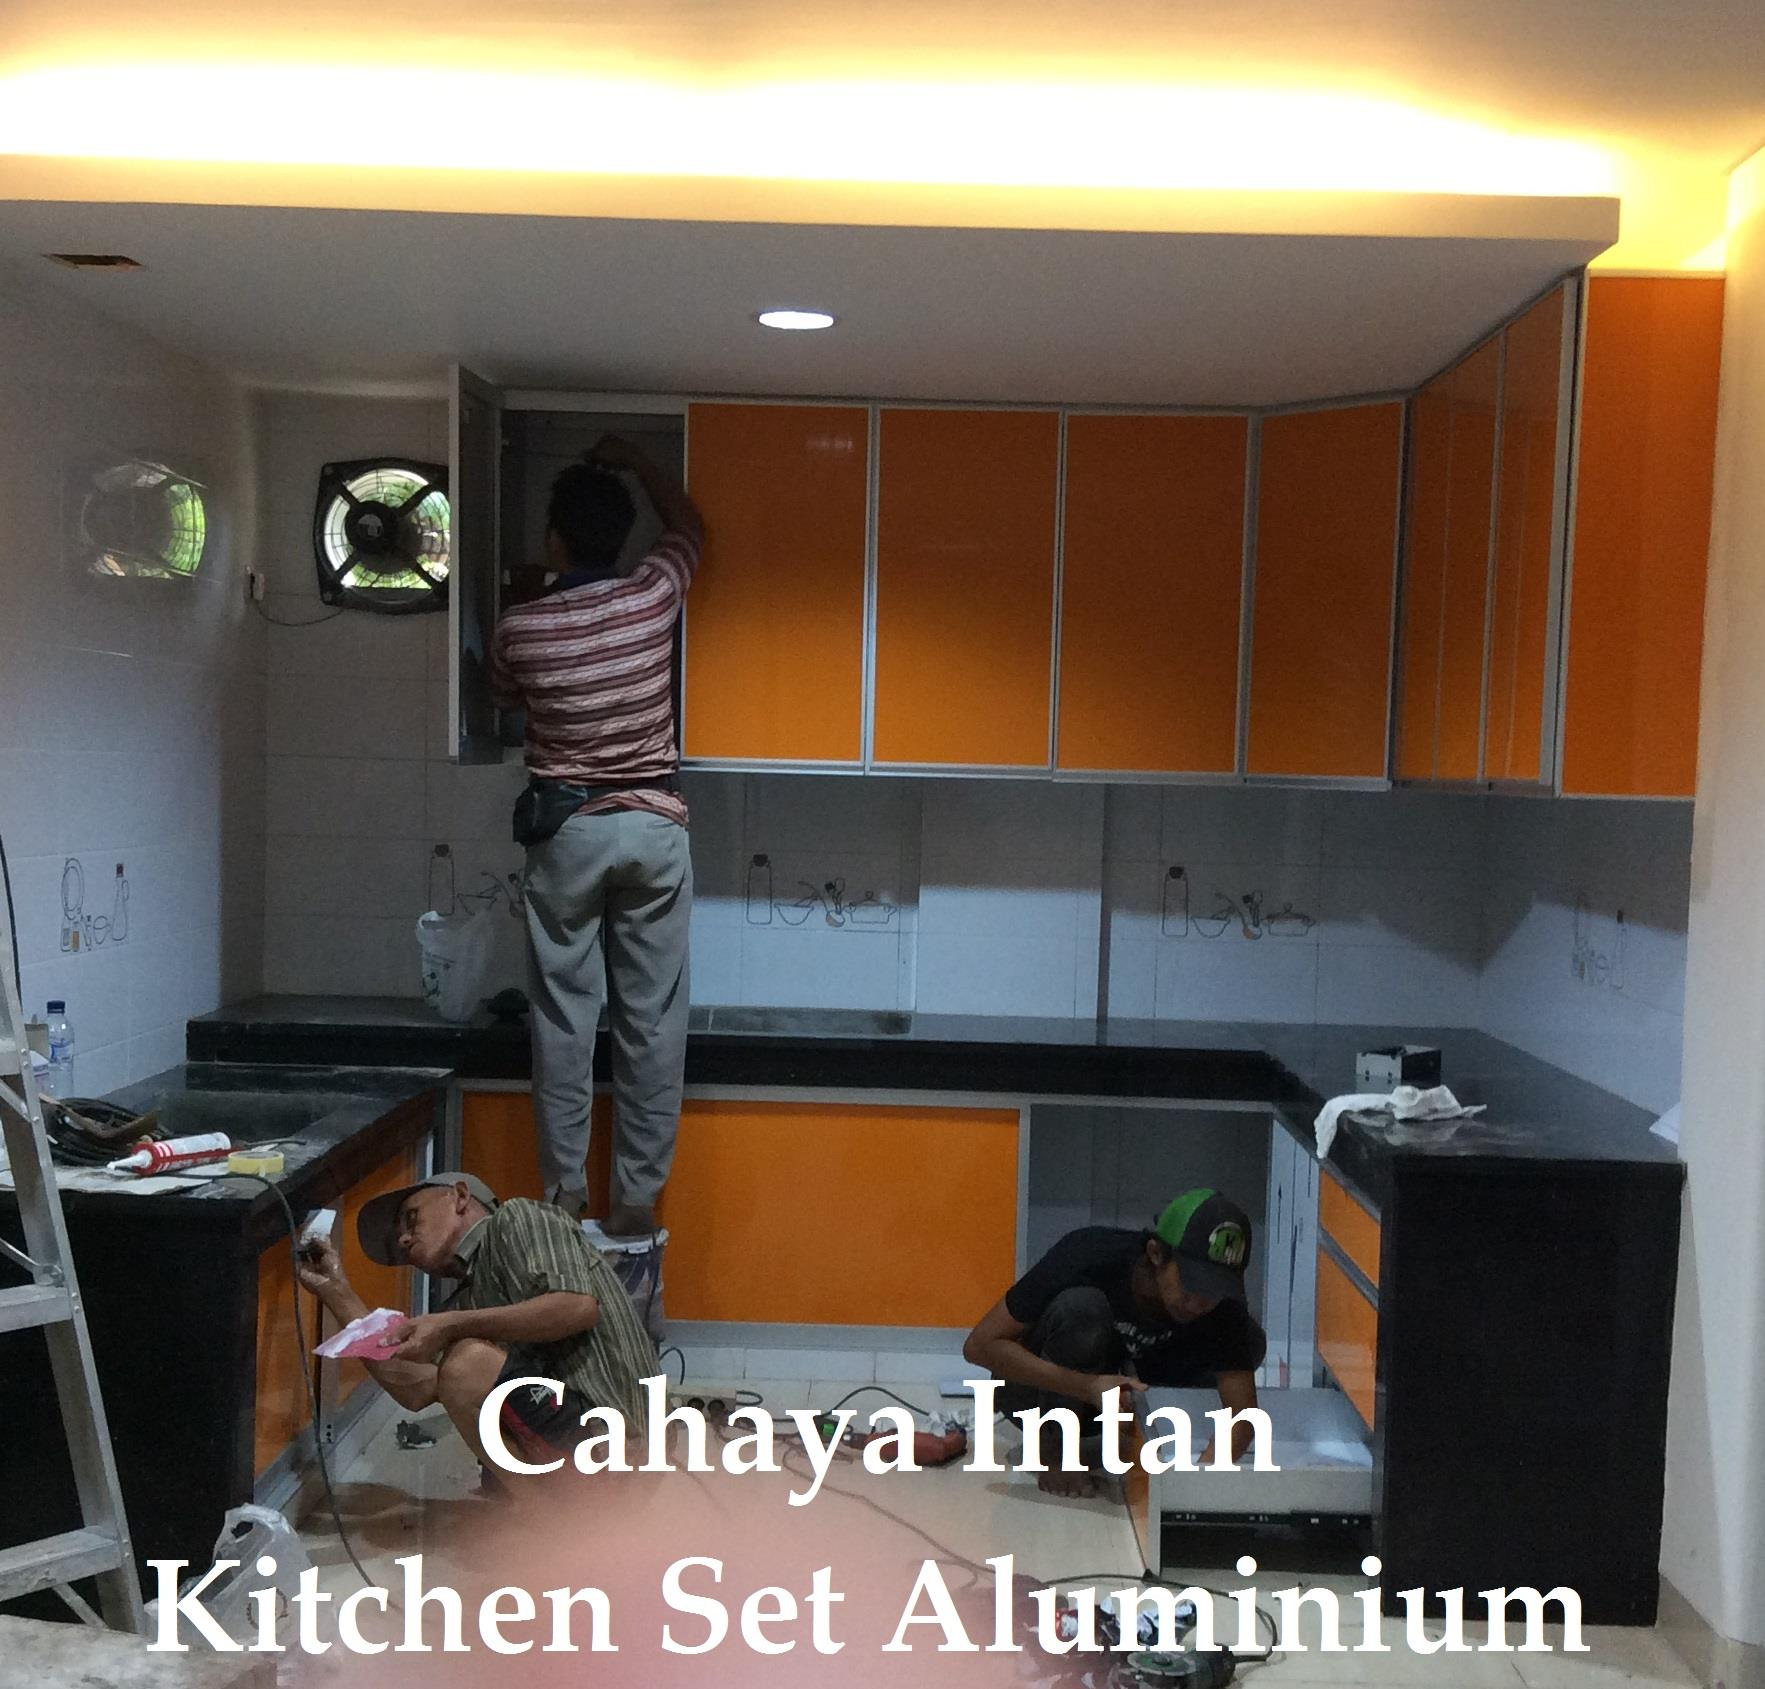 Sell aluminum kitchen set from indonesia by toko cahaya intan alumuniumcheap price